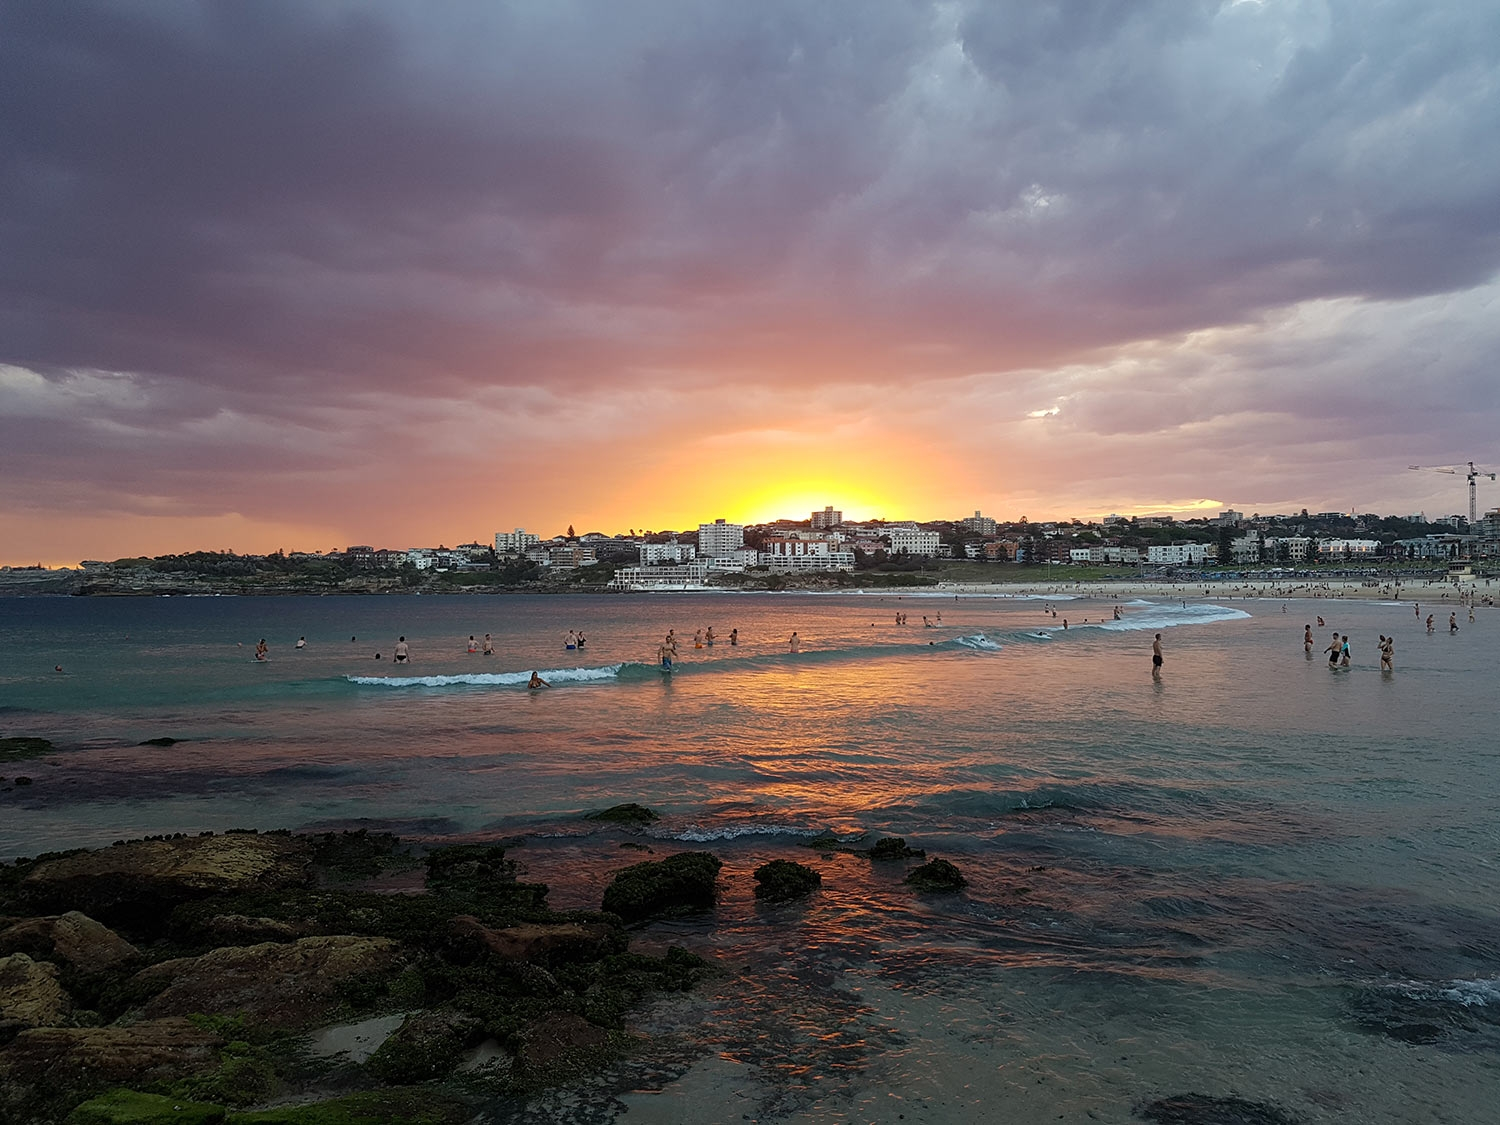 BONDI SUNSET, JANUARY 2017